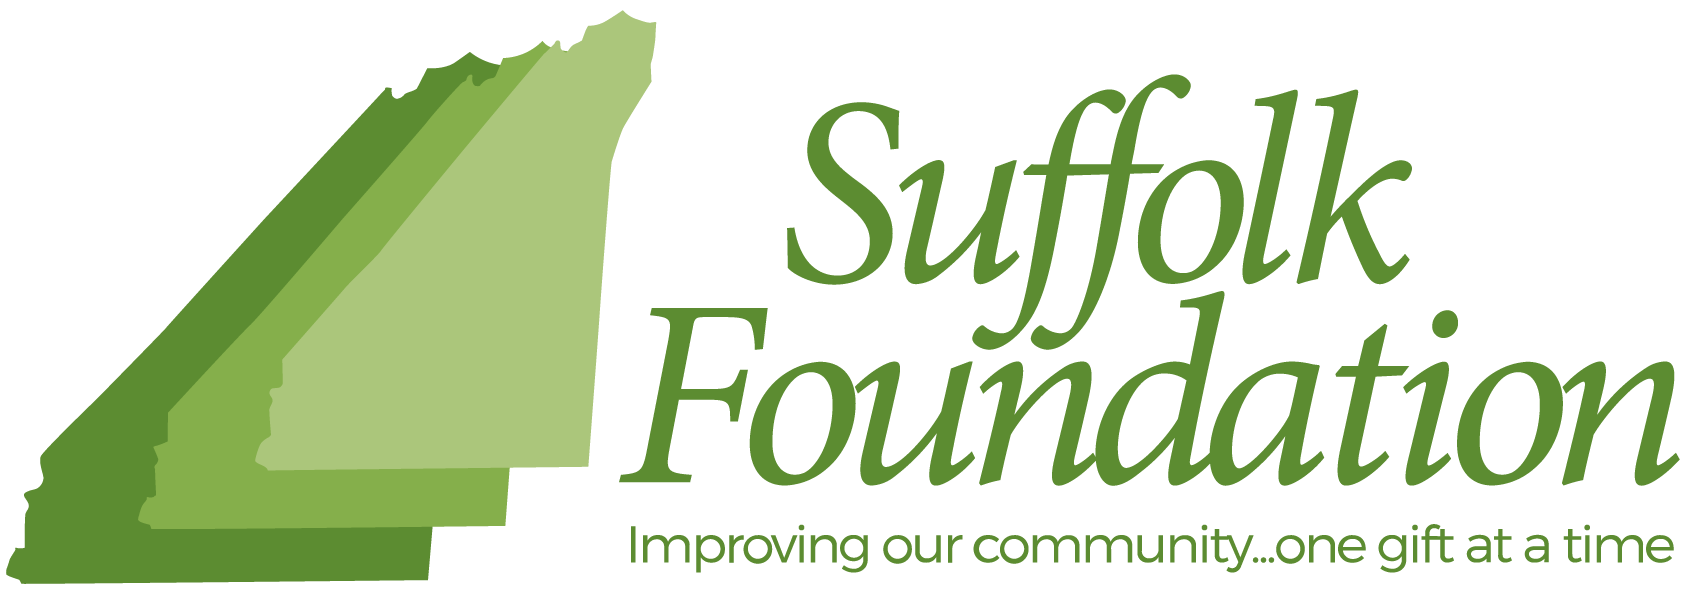 Suffolk foundationlogo.png